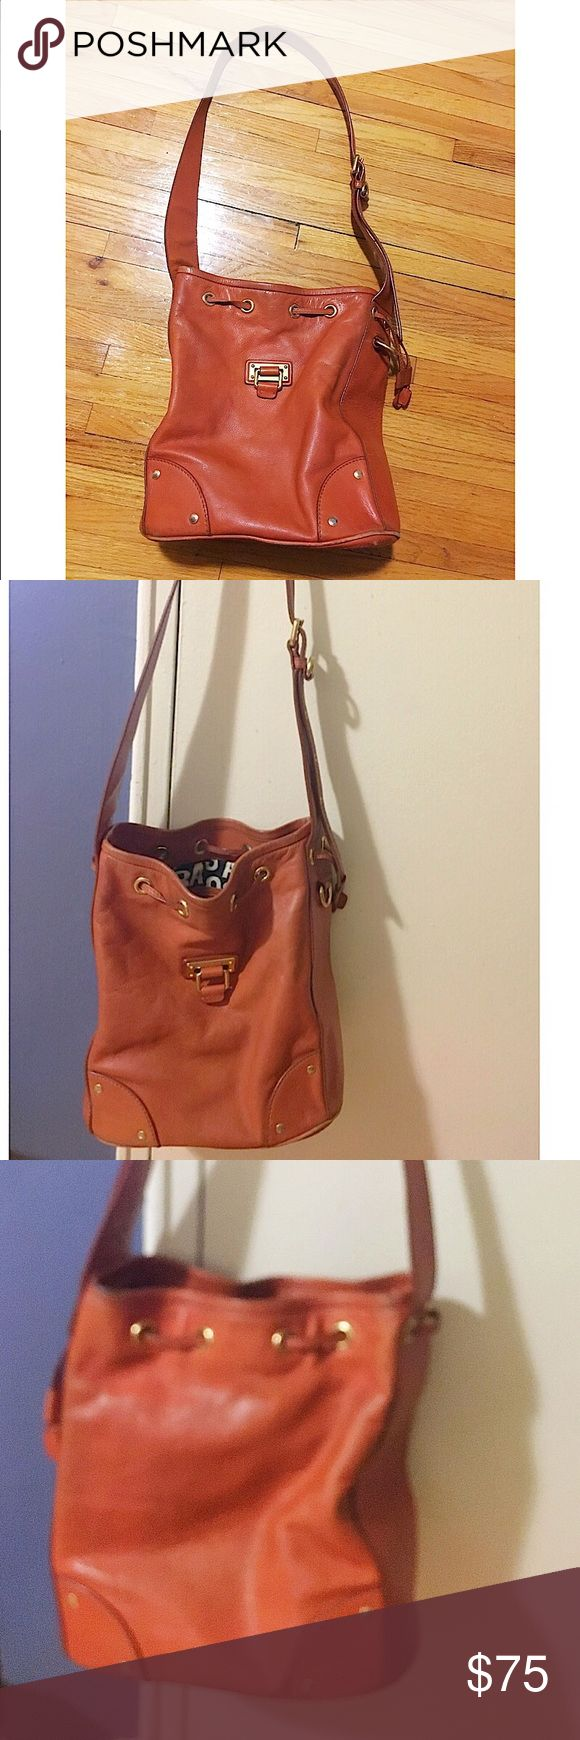 "Marc by Marc Jacobs cognac leather bucket bag This bag has some wear noted but still has plenty of life left. Genuine leather that can be taken to a shoemaker to have it polished and spruced up. Adjustable strap. 36"" strap length. 12"" height, 7"" width, 10"" length. ✅offers❌trades/PP 💰make an offer on bundles Marc by Marc Jacobs Bags Shoulder Bags"